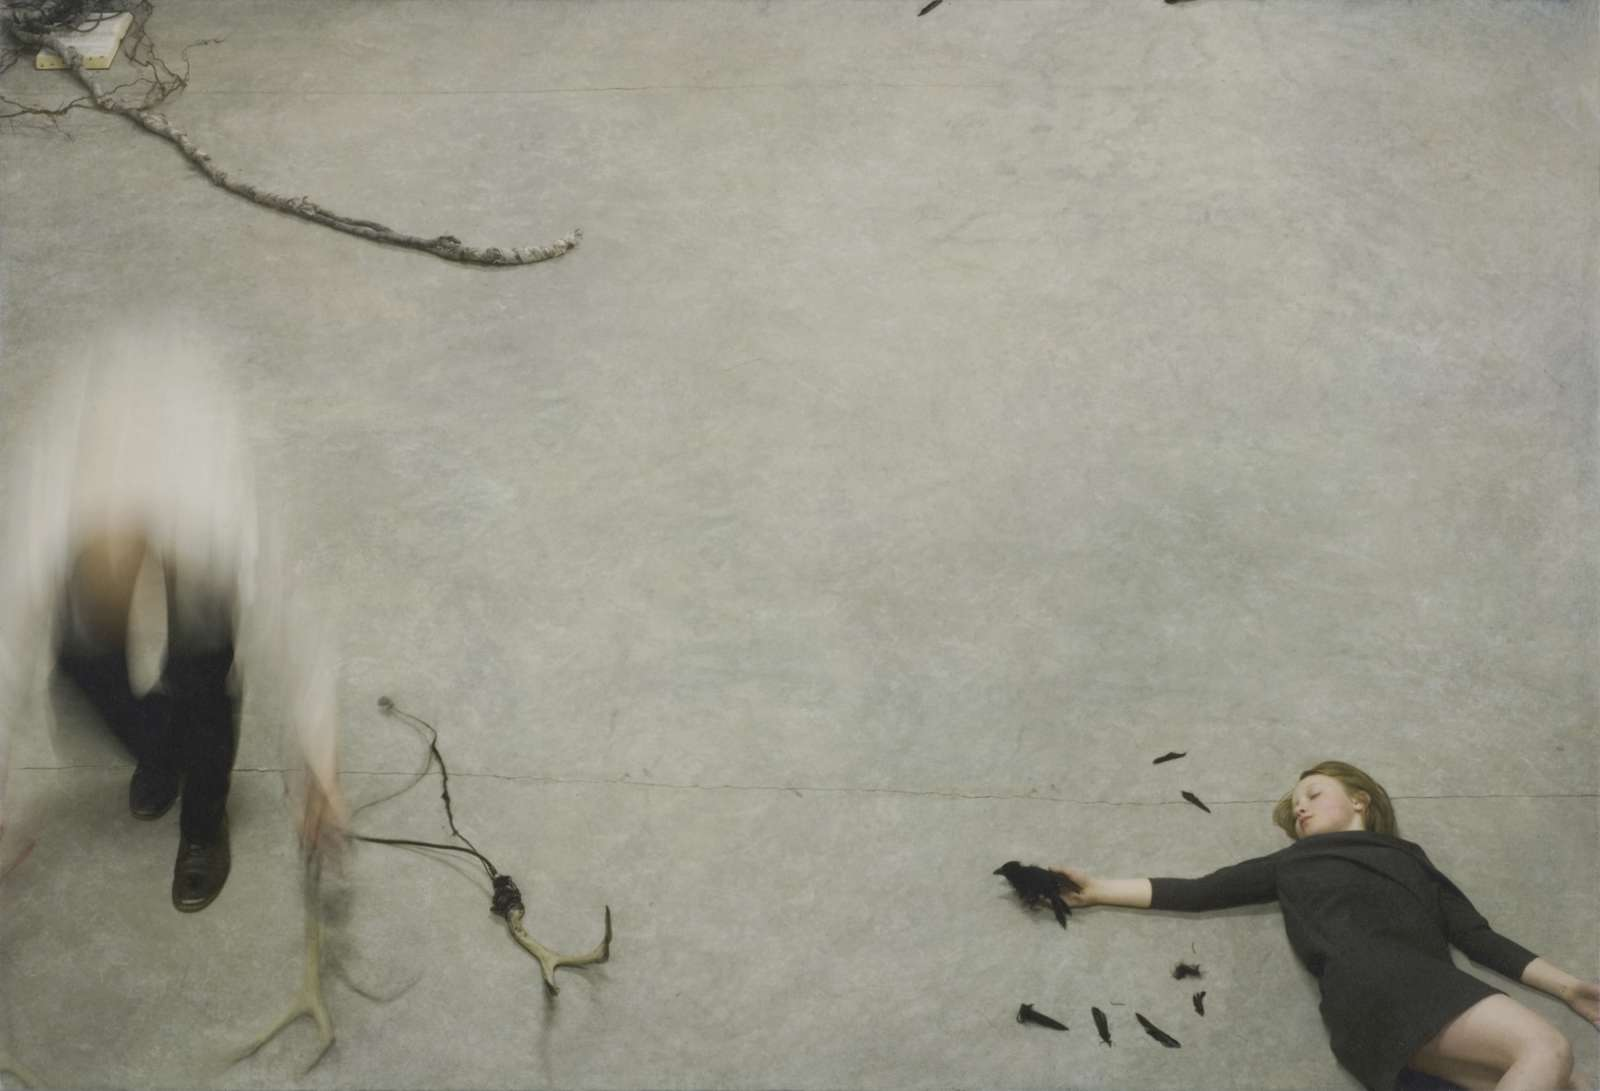 Robert & Shana Parkeharrison Selections from the Counterpoint Series